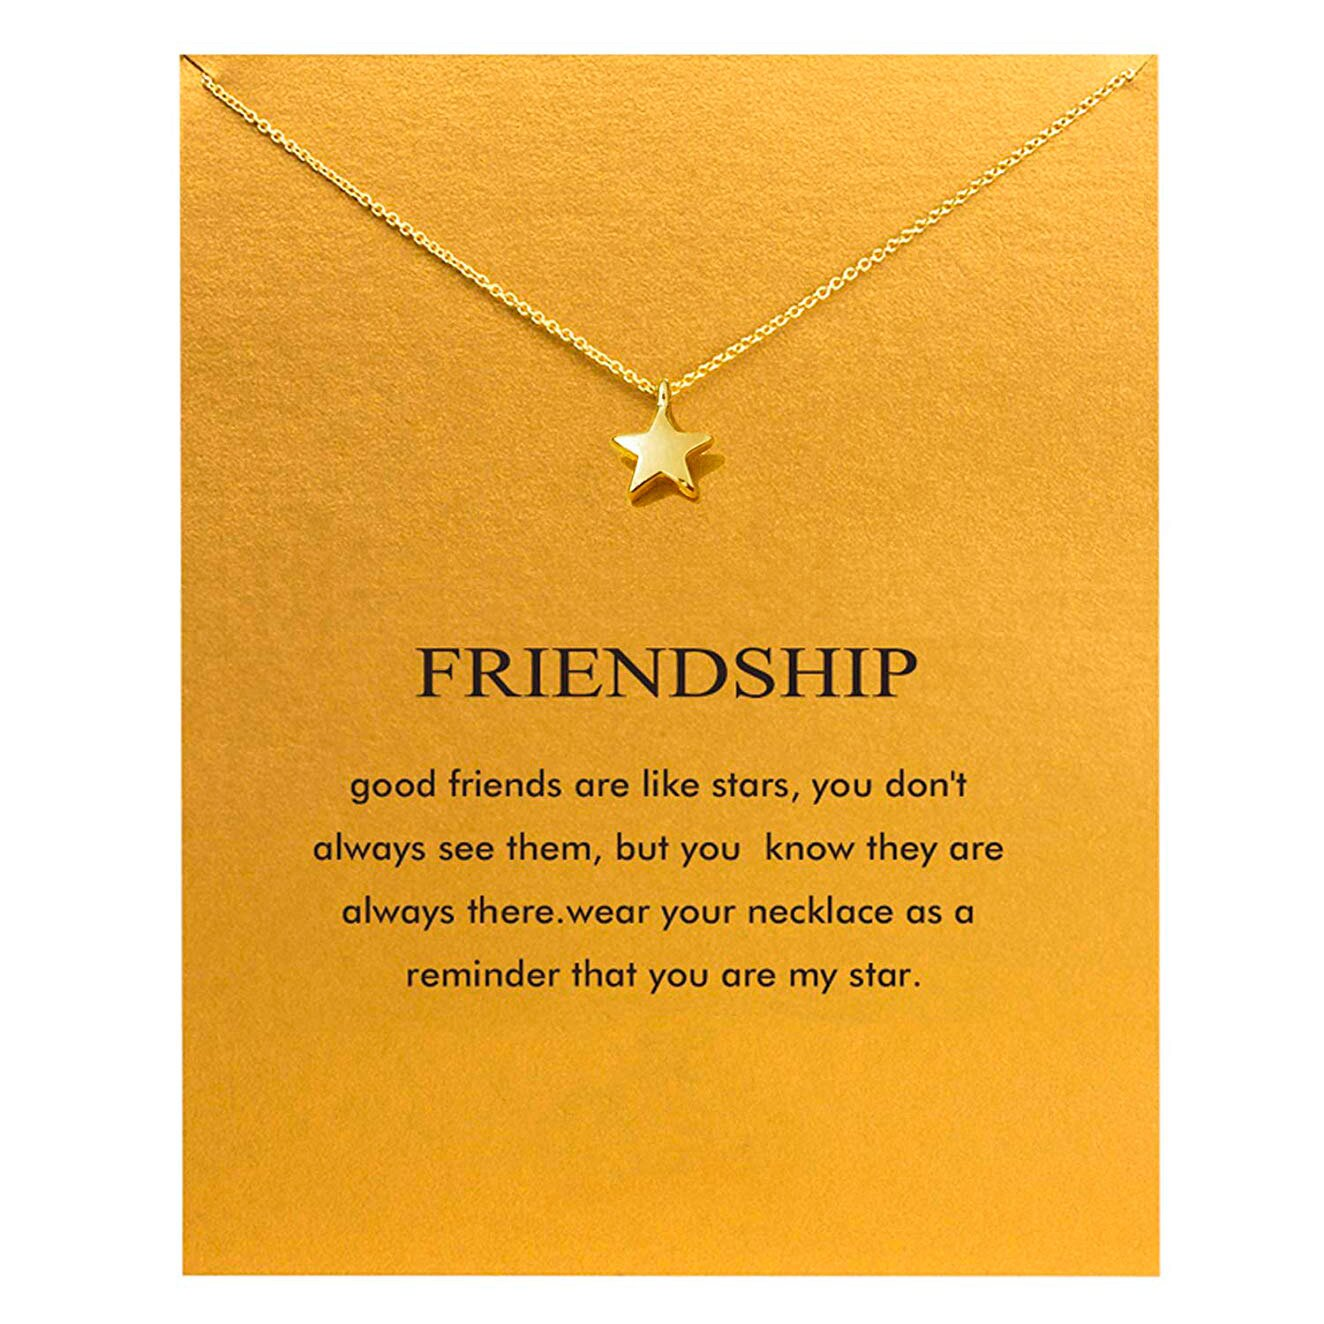 30 Best Friend Christmas Gifts For Girls Real Simple